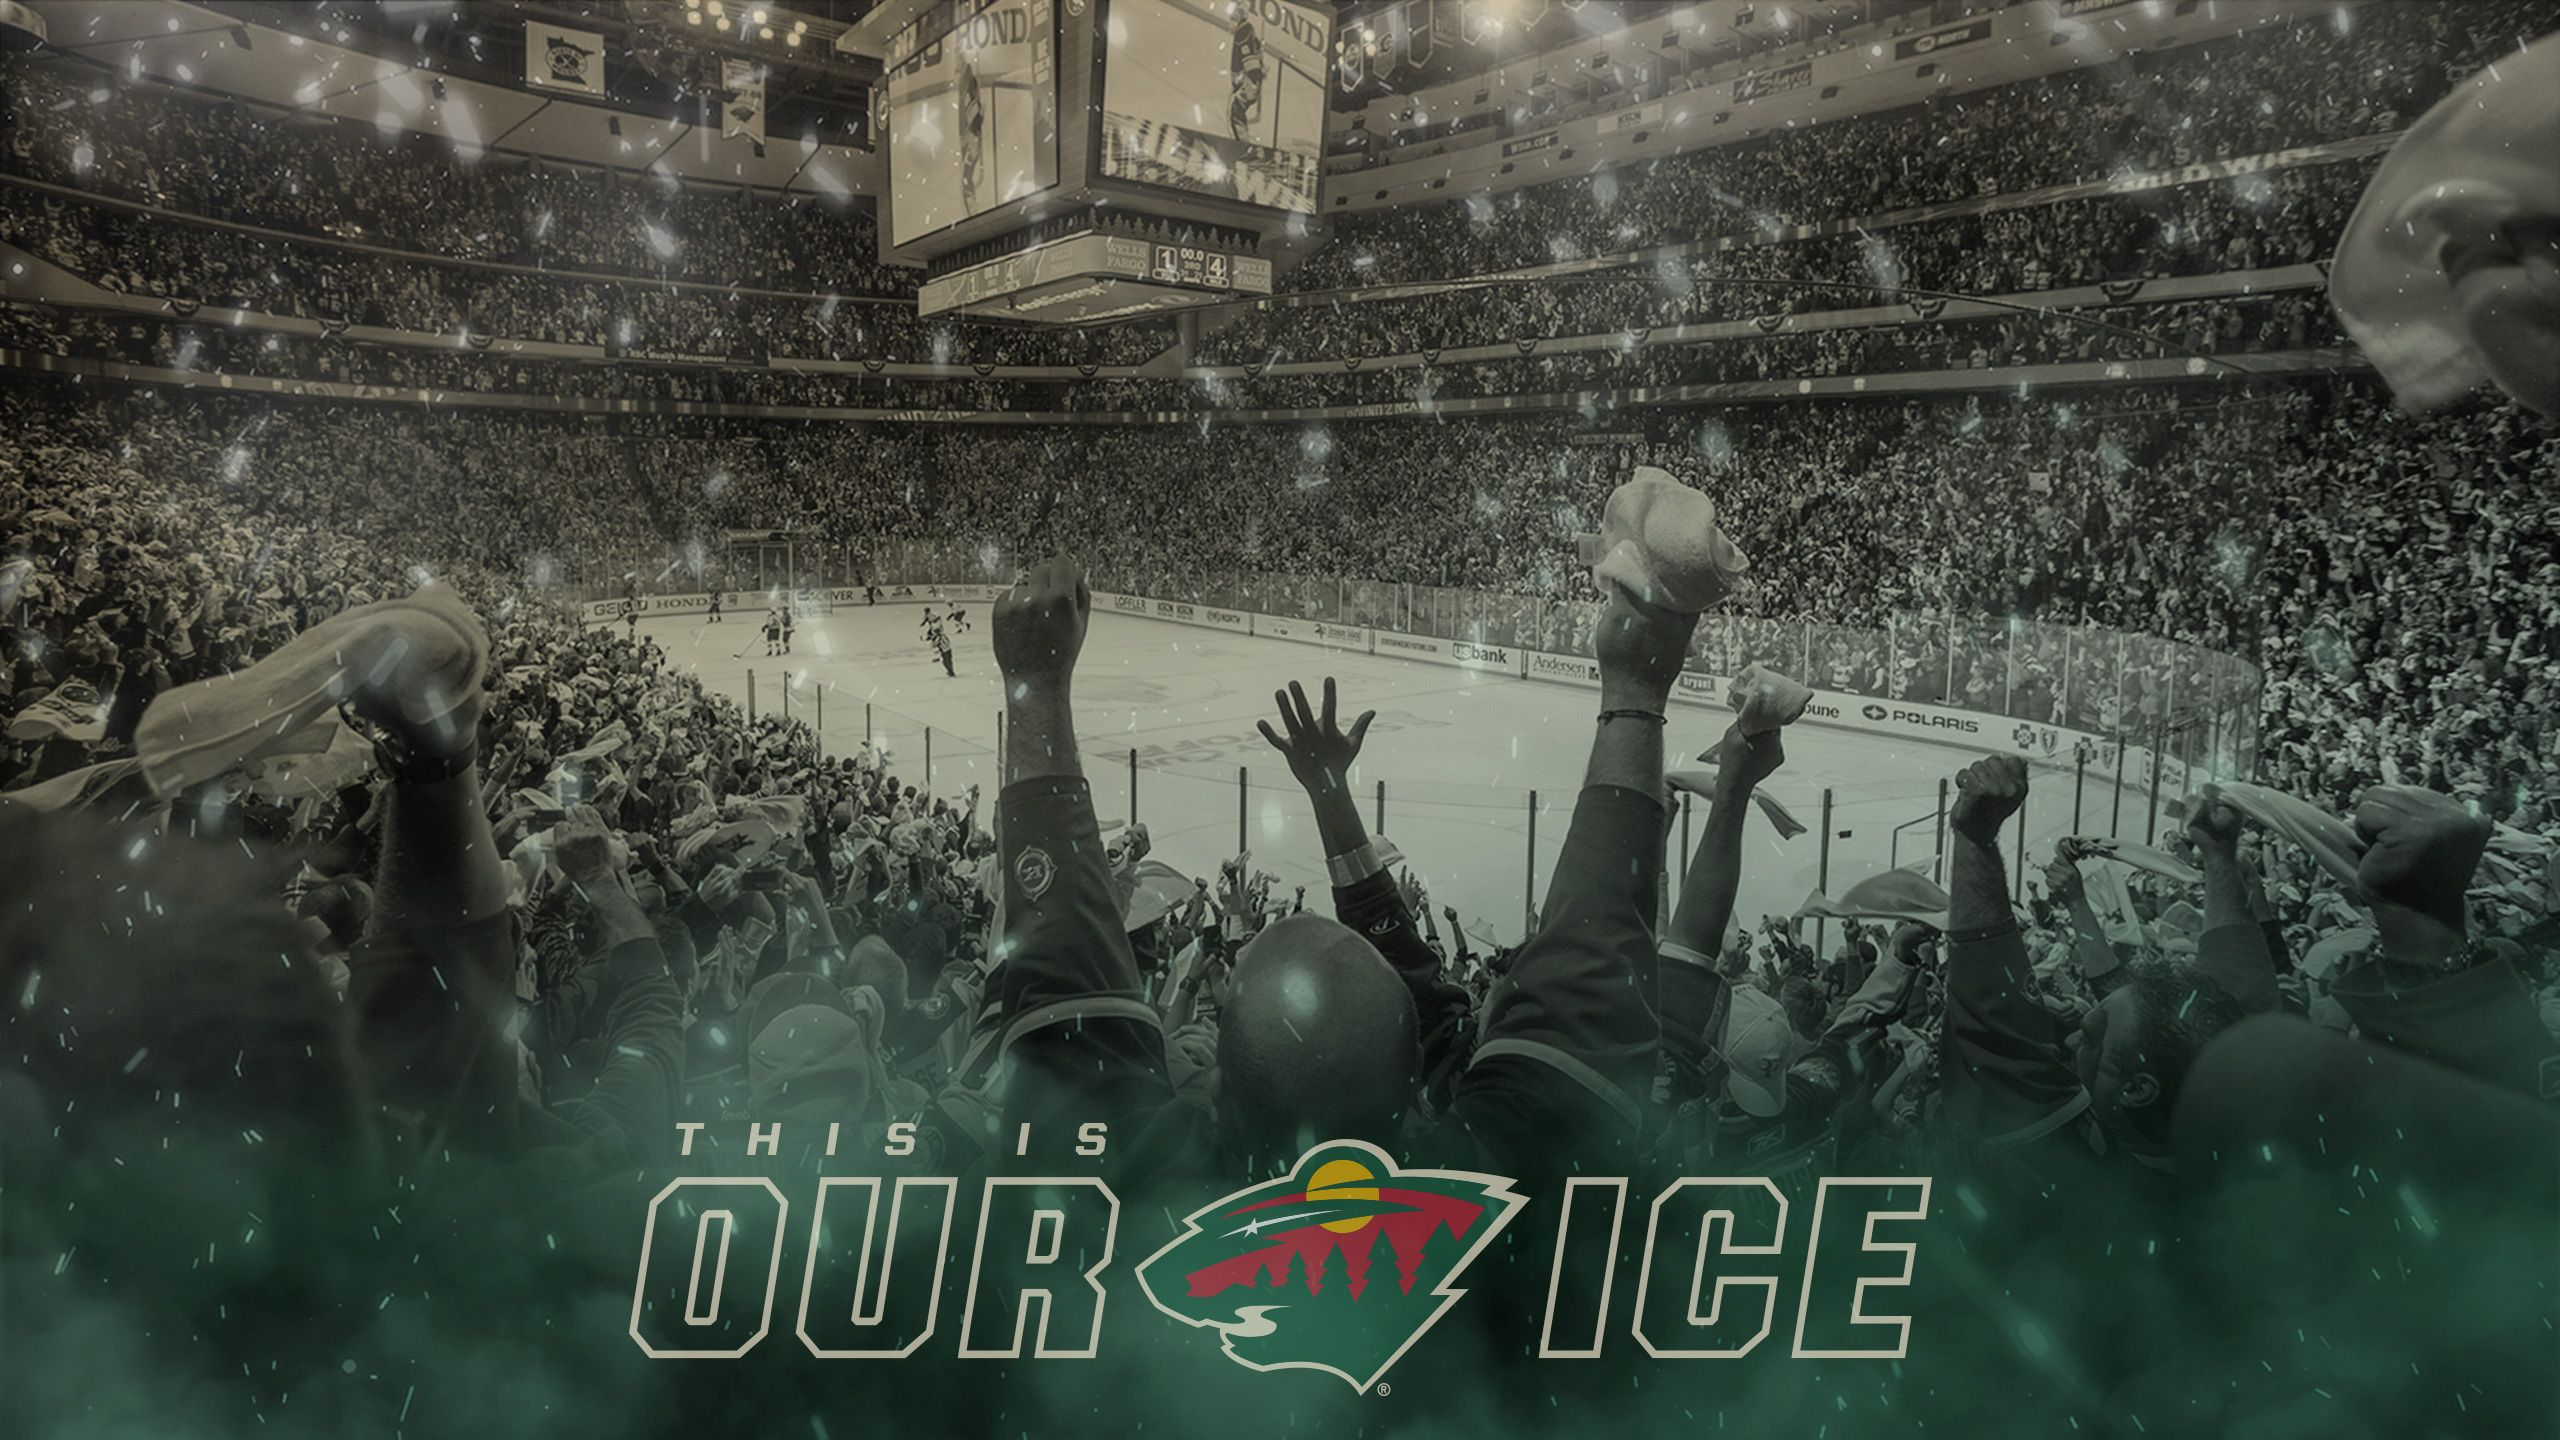 Desktop & Mobile Wallpapers | Minnesota Wild